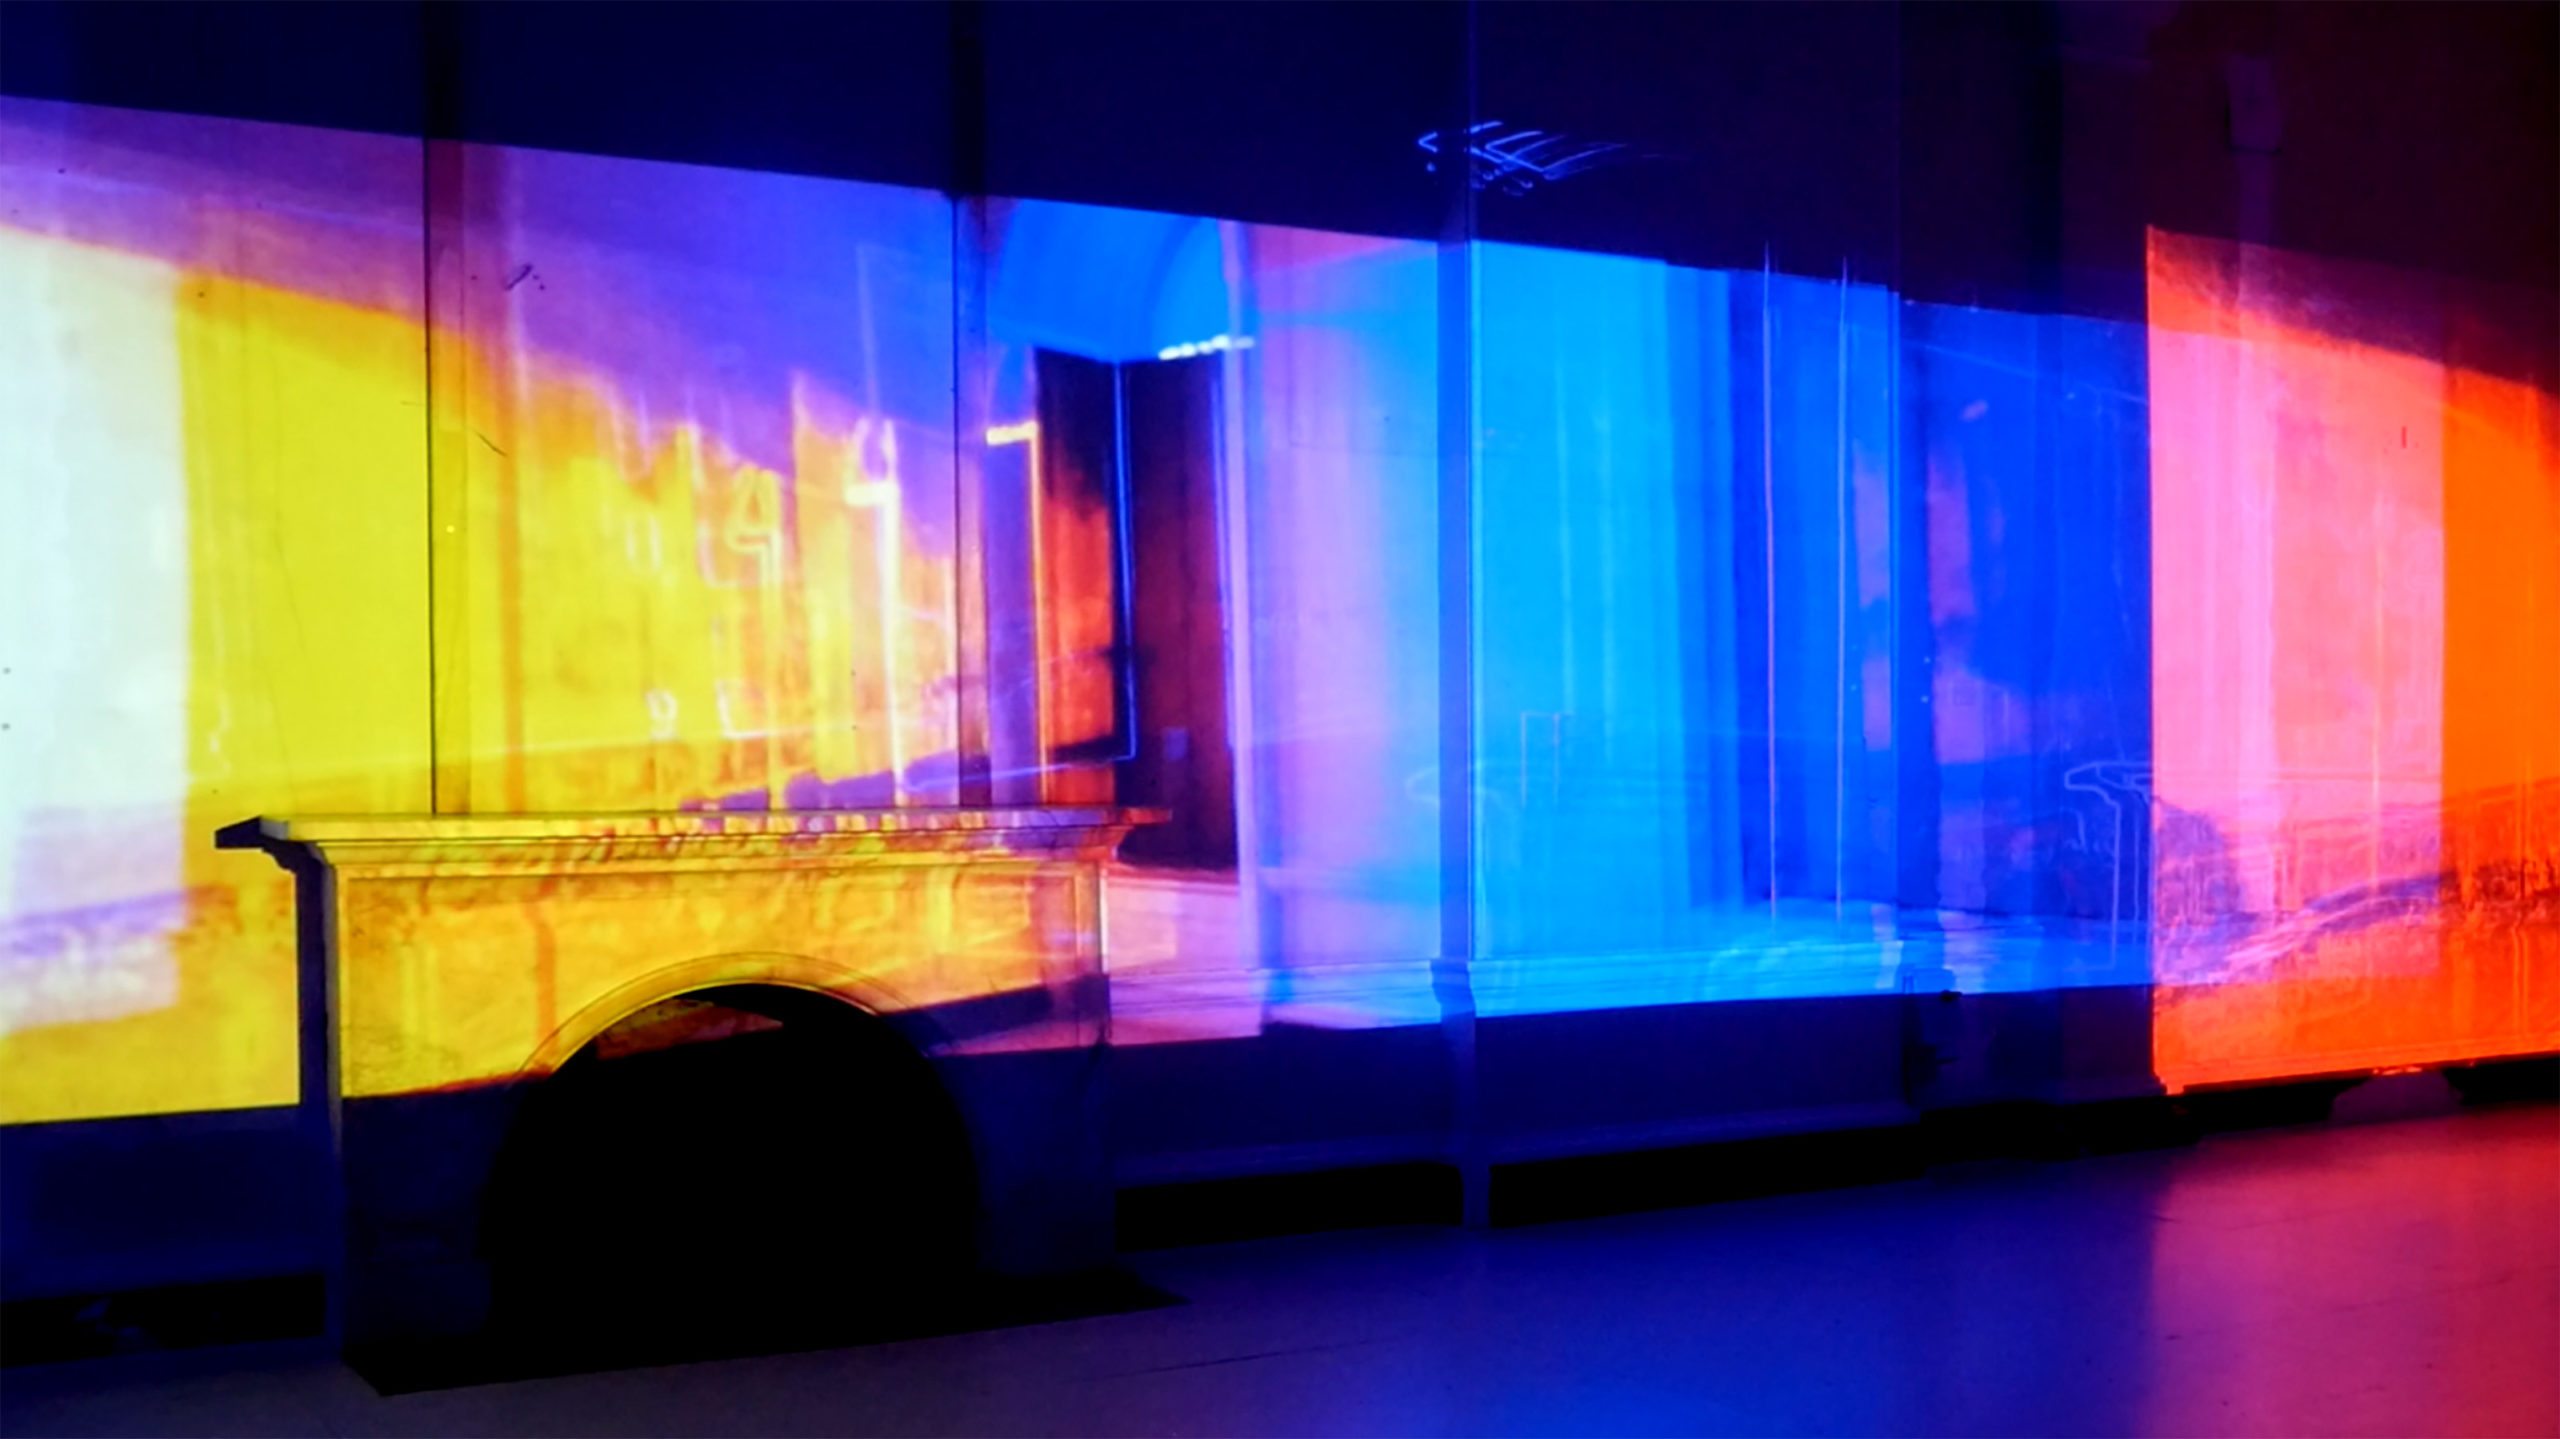 projection of an interior with a fireplace covered in the colors of the spectrum